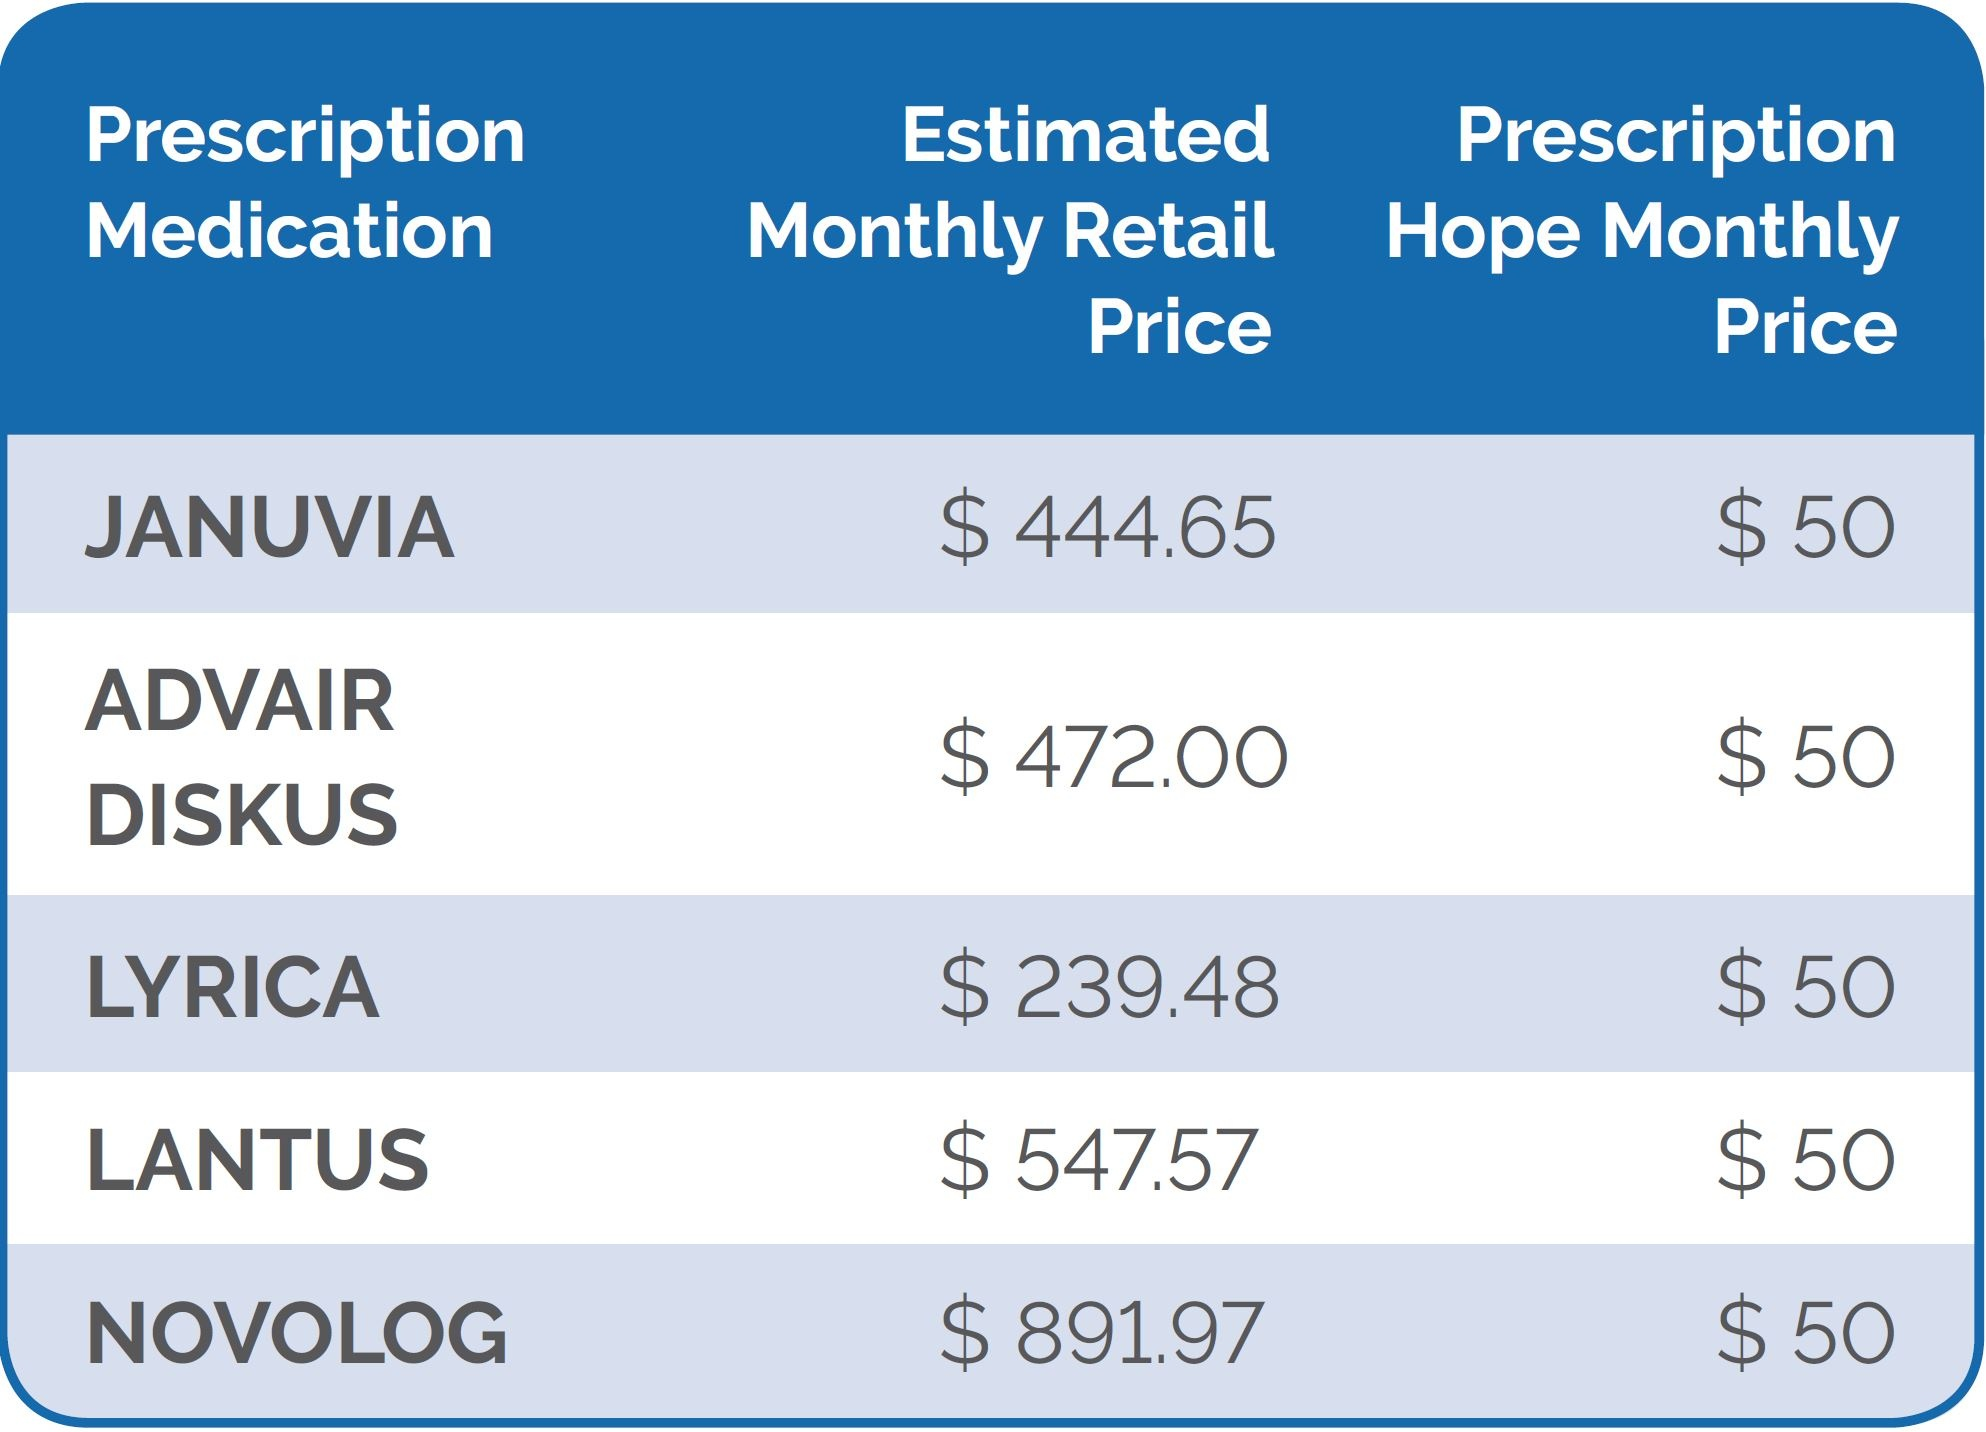 Trulicity Coupon (Dulaglutide) - $50 Per Month Total Cost ...